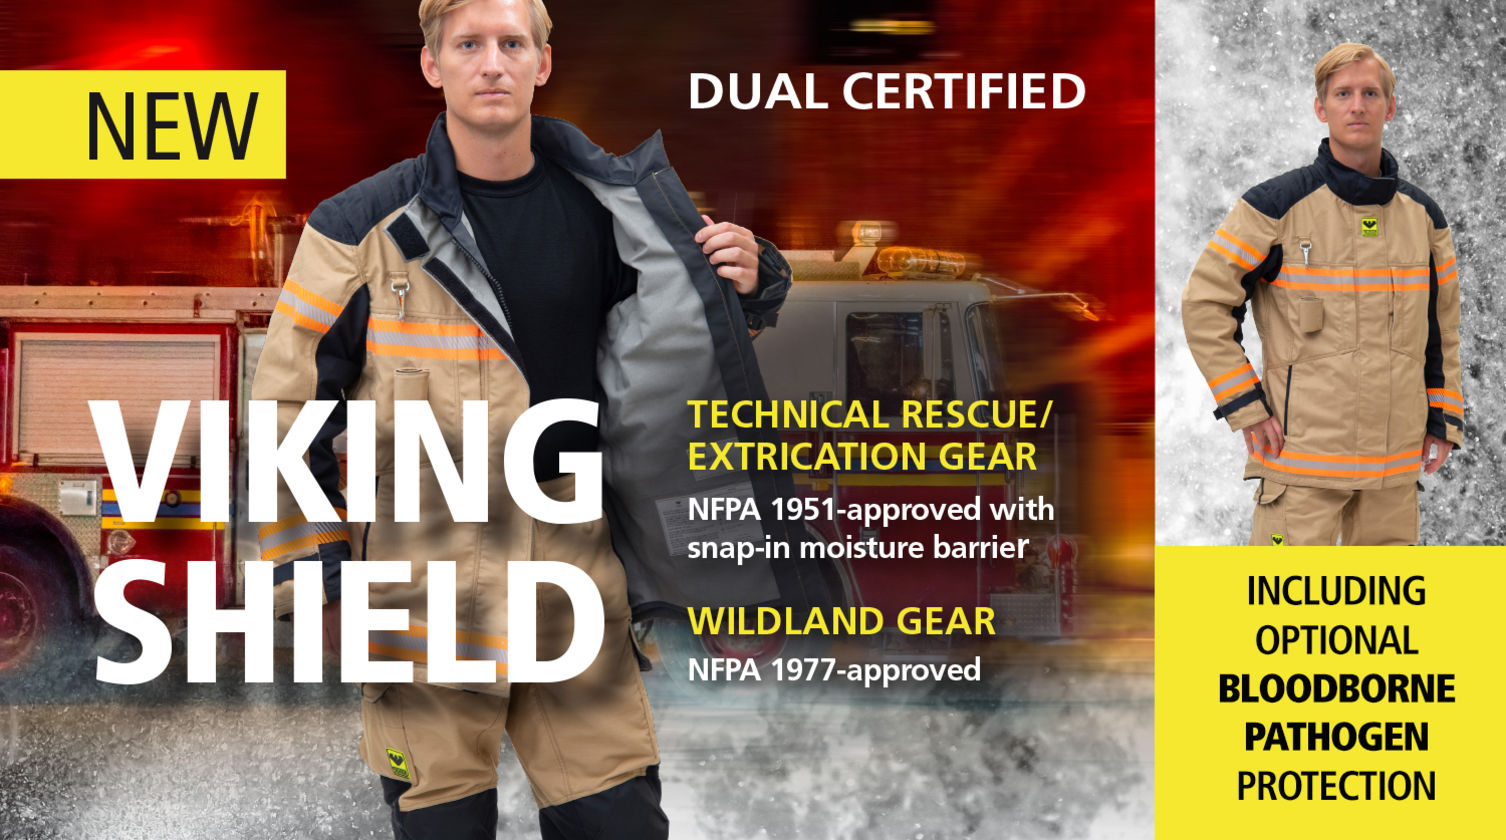 VIKING SHIELD NFPA